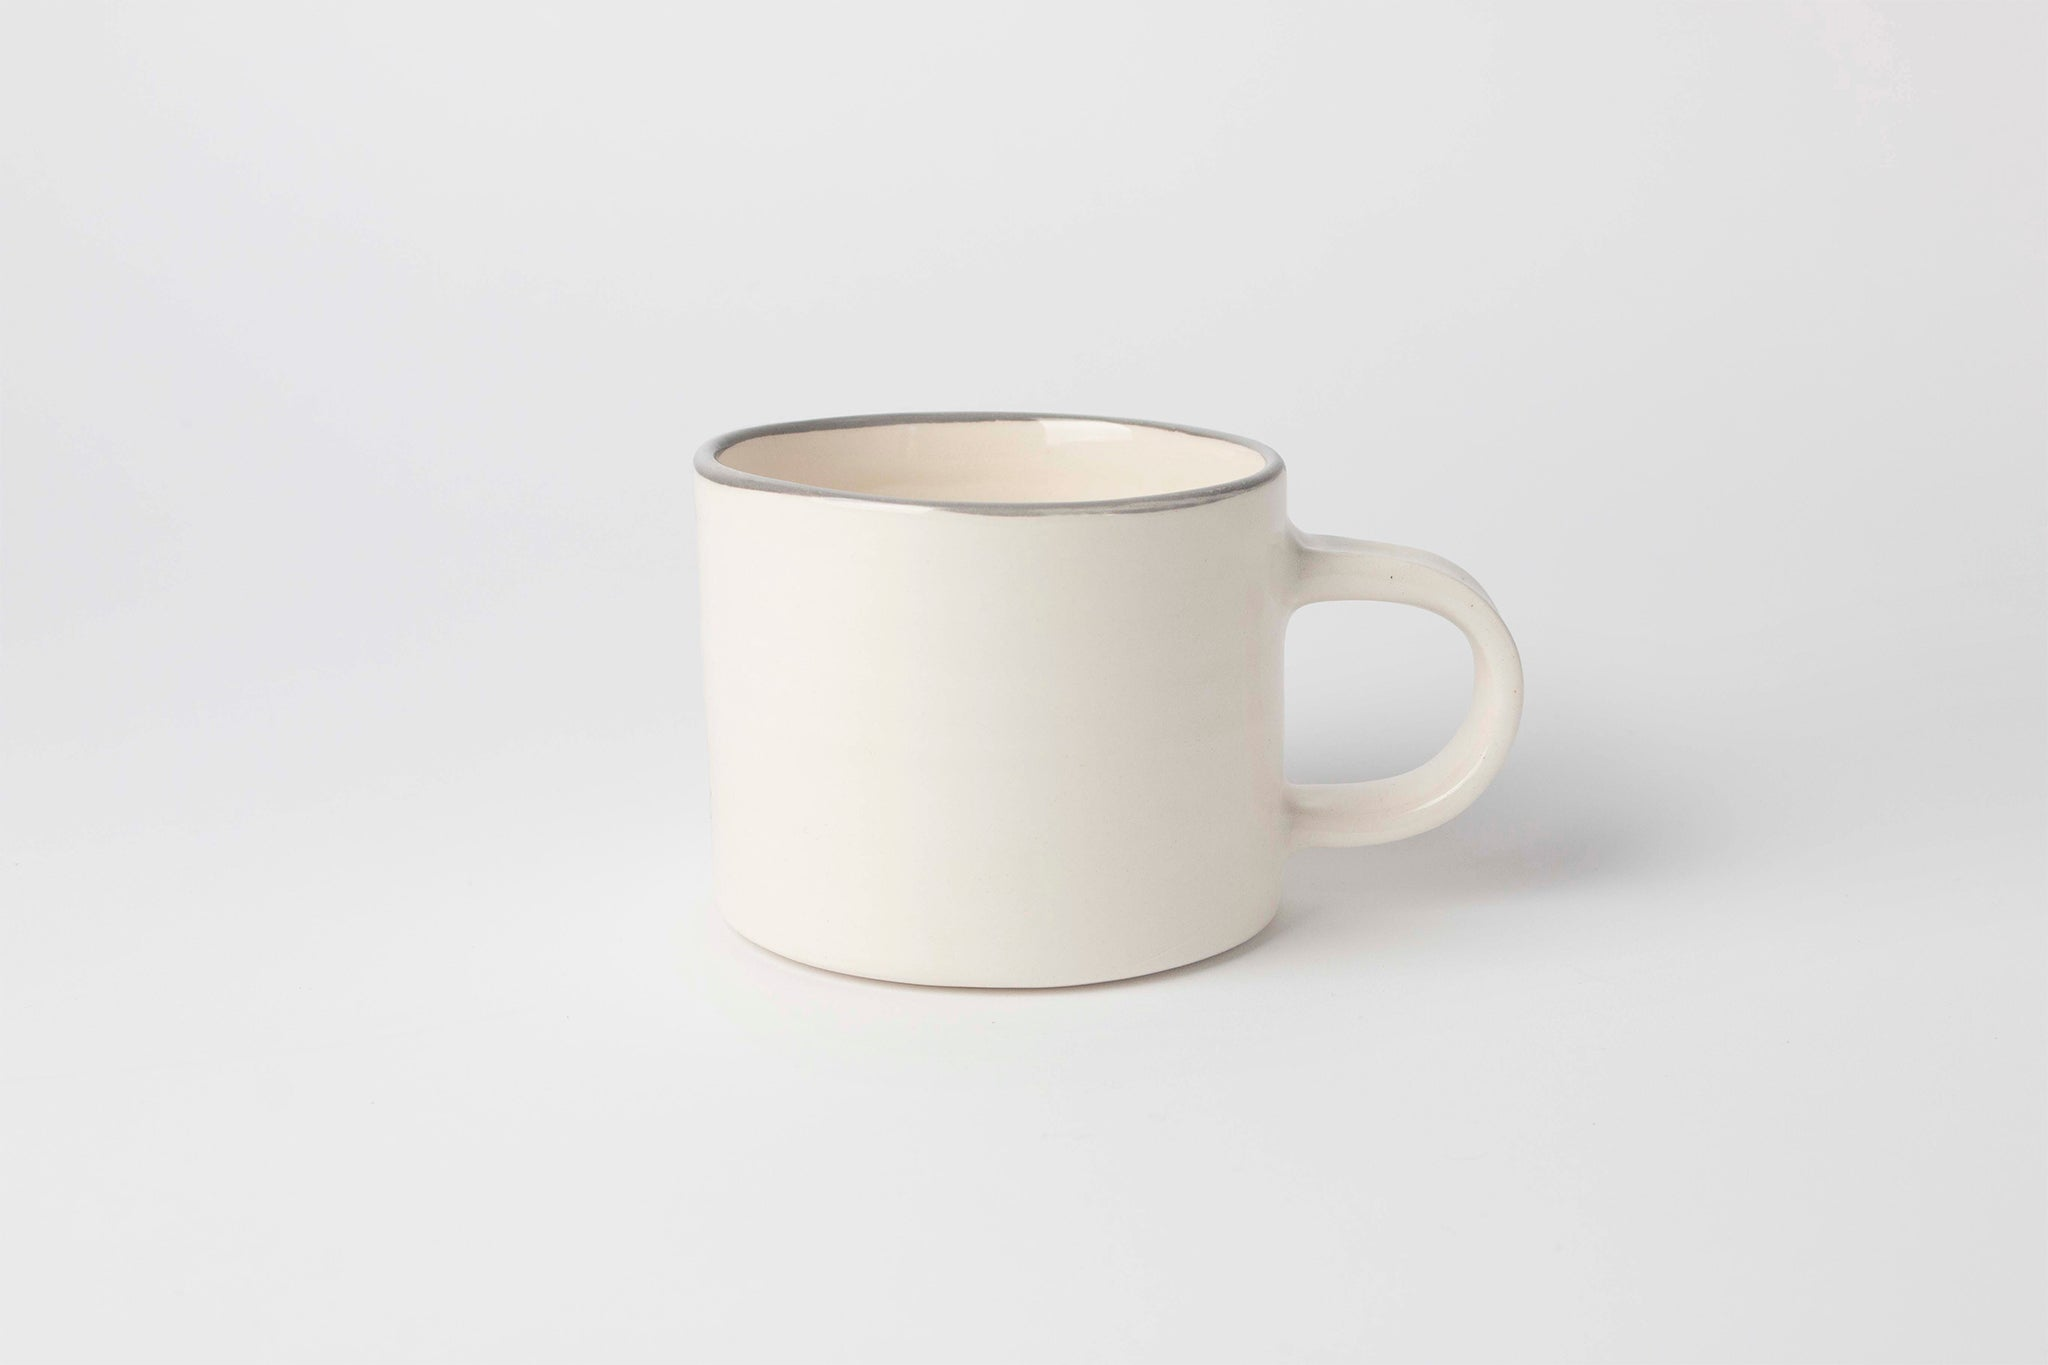 Nicholas Newcomb White Mug with Grey Rim